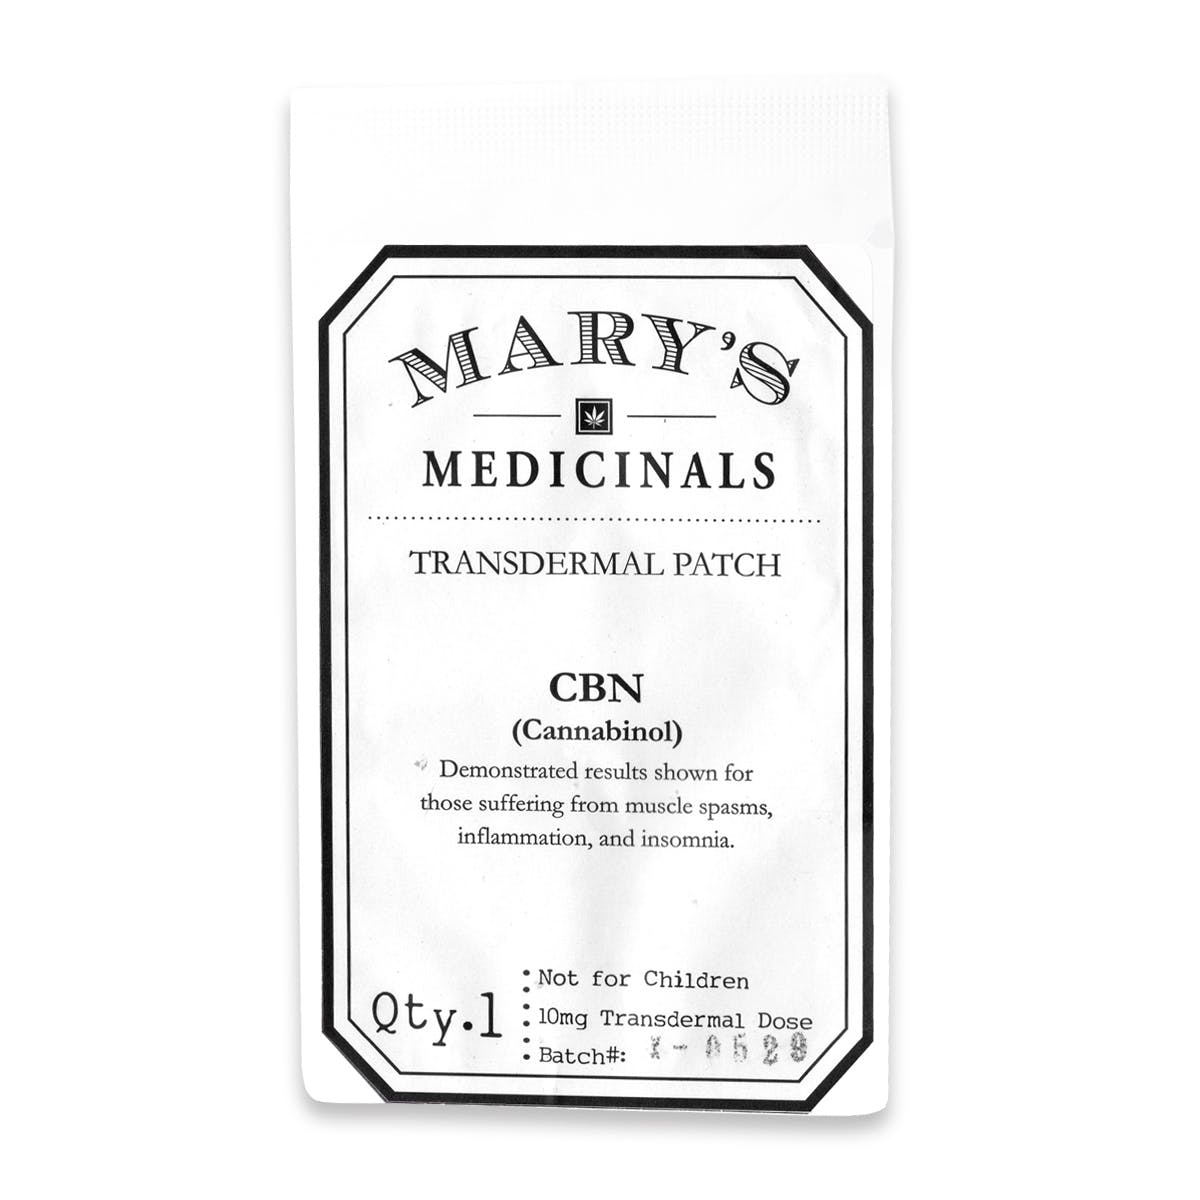 marijuana-dispensaries-champlain-valley-dispensary-vermont-in-burlington-cbn-transdermal-patch-2c-10mg-med